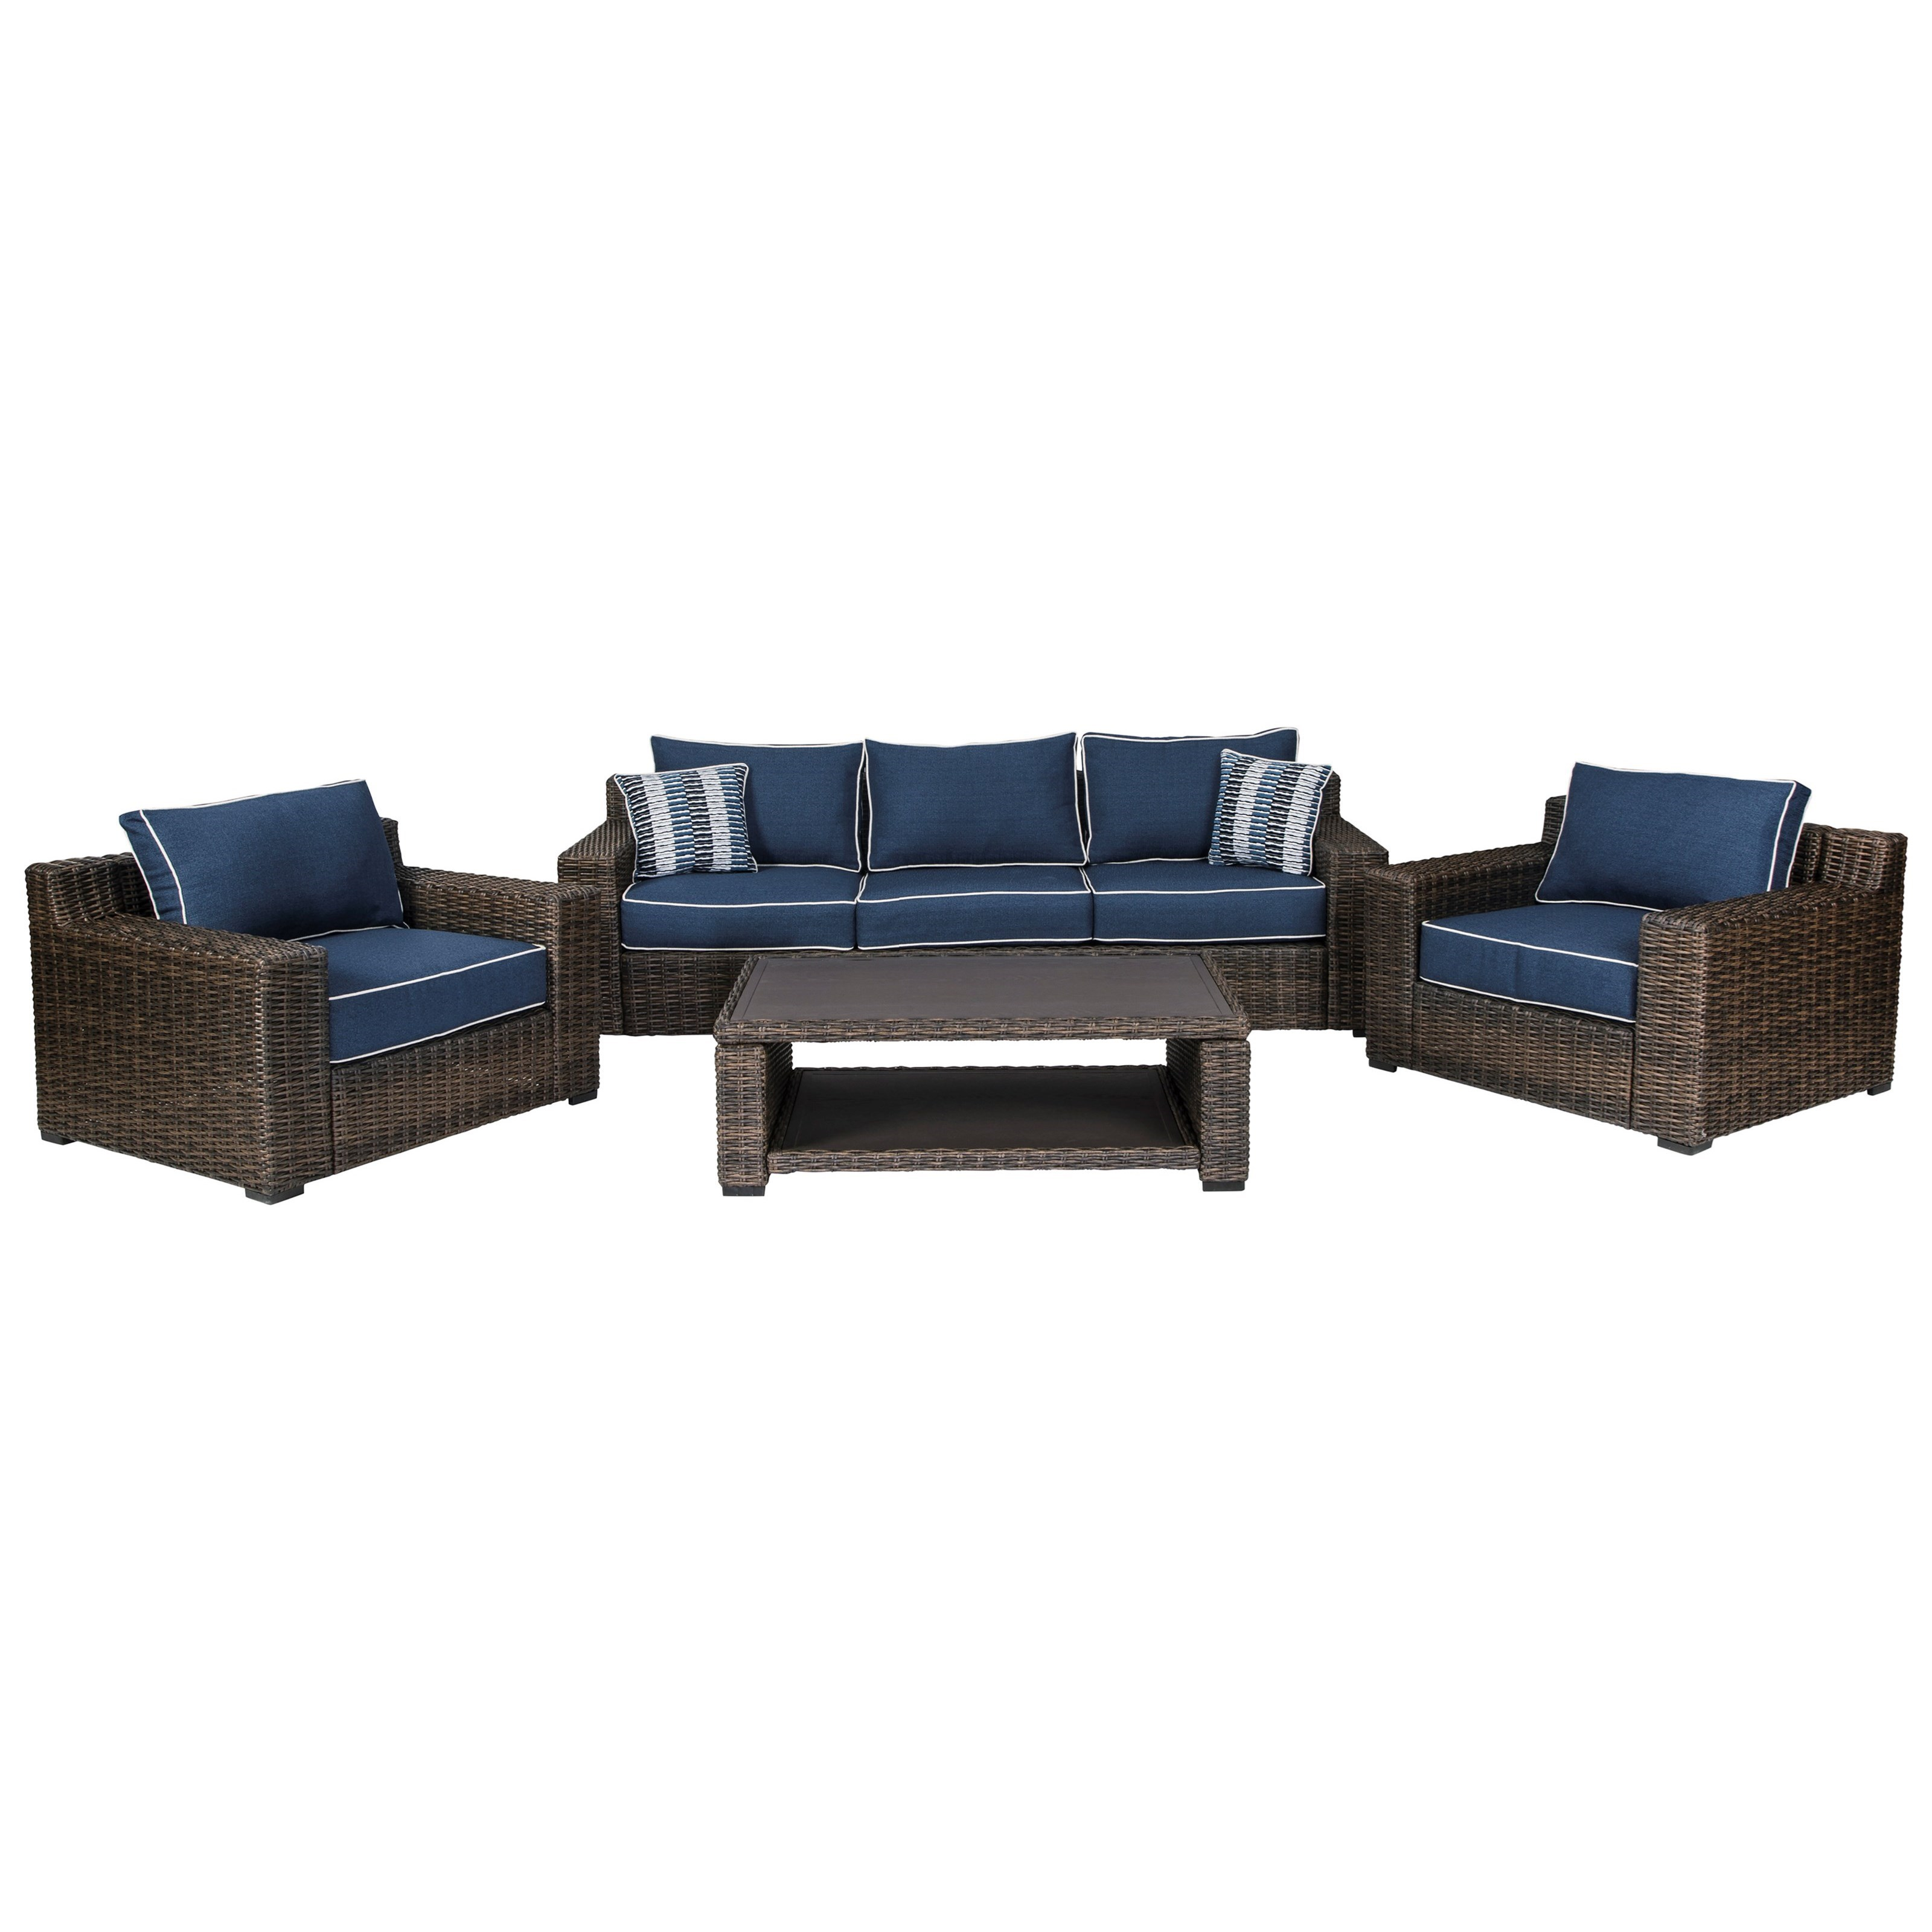 Grasson Lane Outdoor Conversation Set by Signature Design by Ashley at Sparks HomeStore